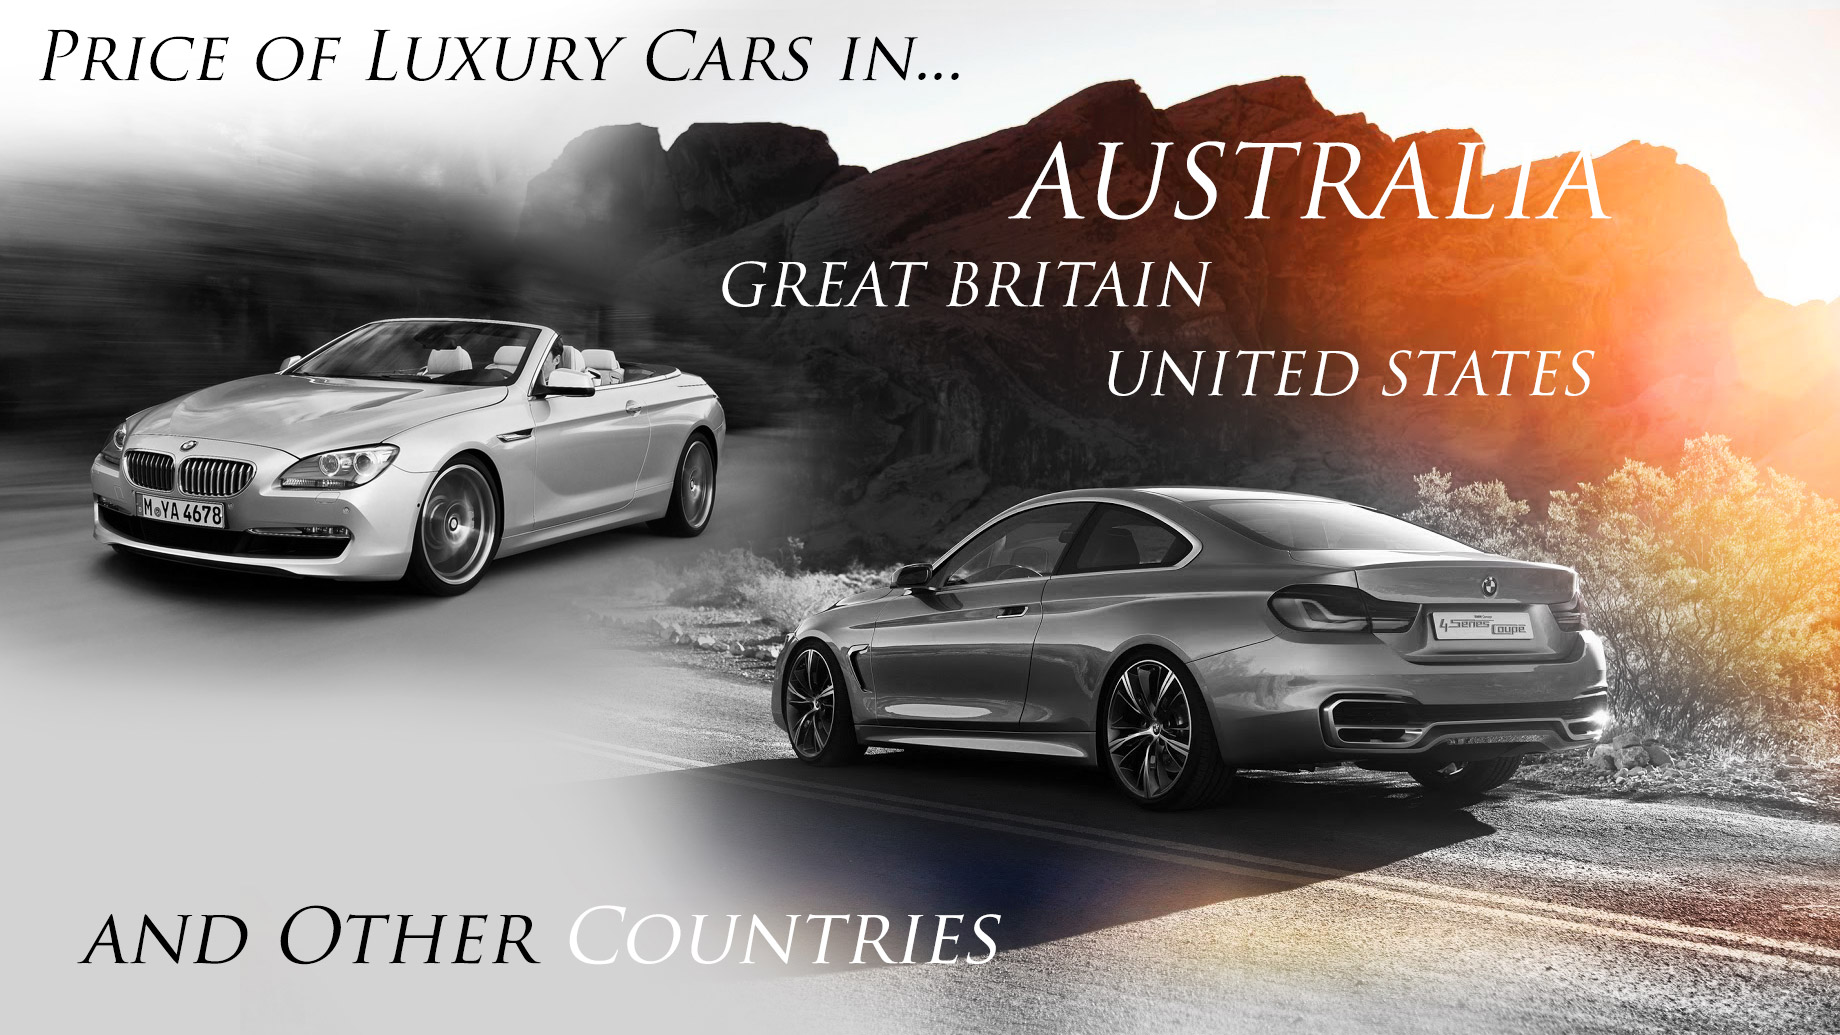 Price of Luxury Cars in Australia vs. Great Britain, America, and Other Countries